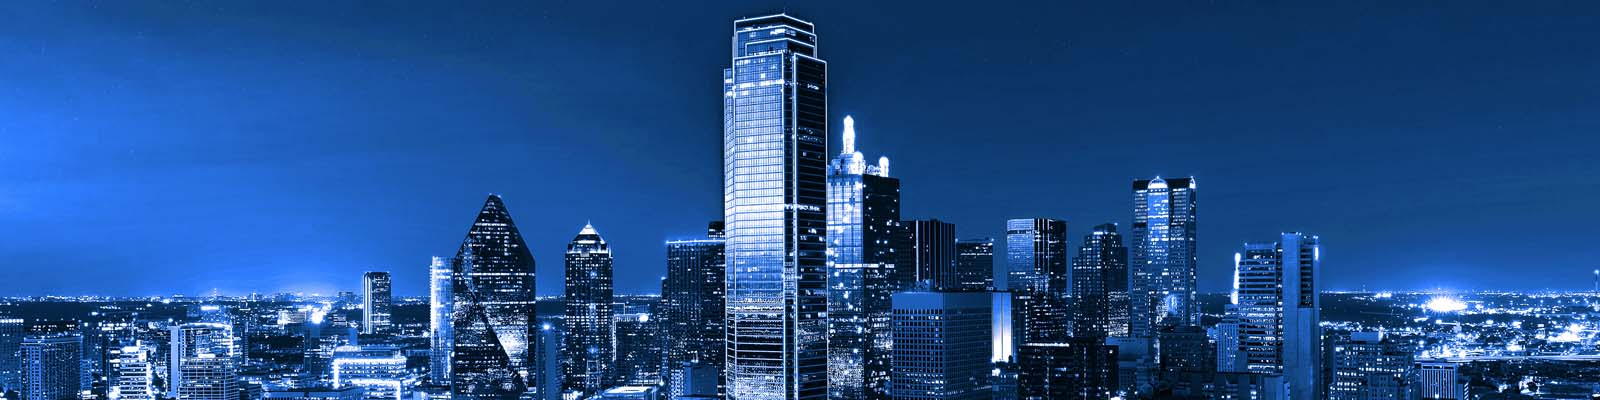 This is an cityscape image in Dallas Texas where ASTA-USA provides professional translation services.